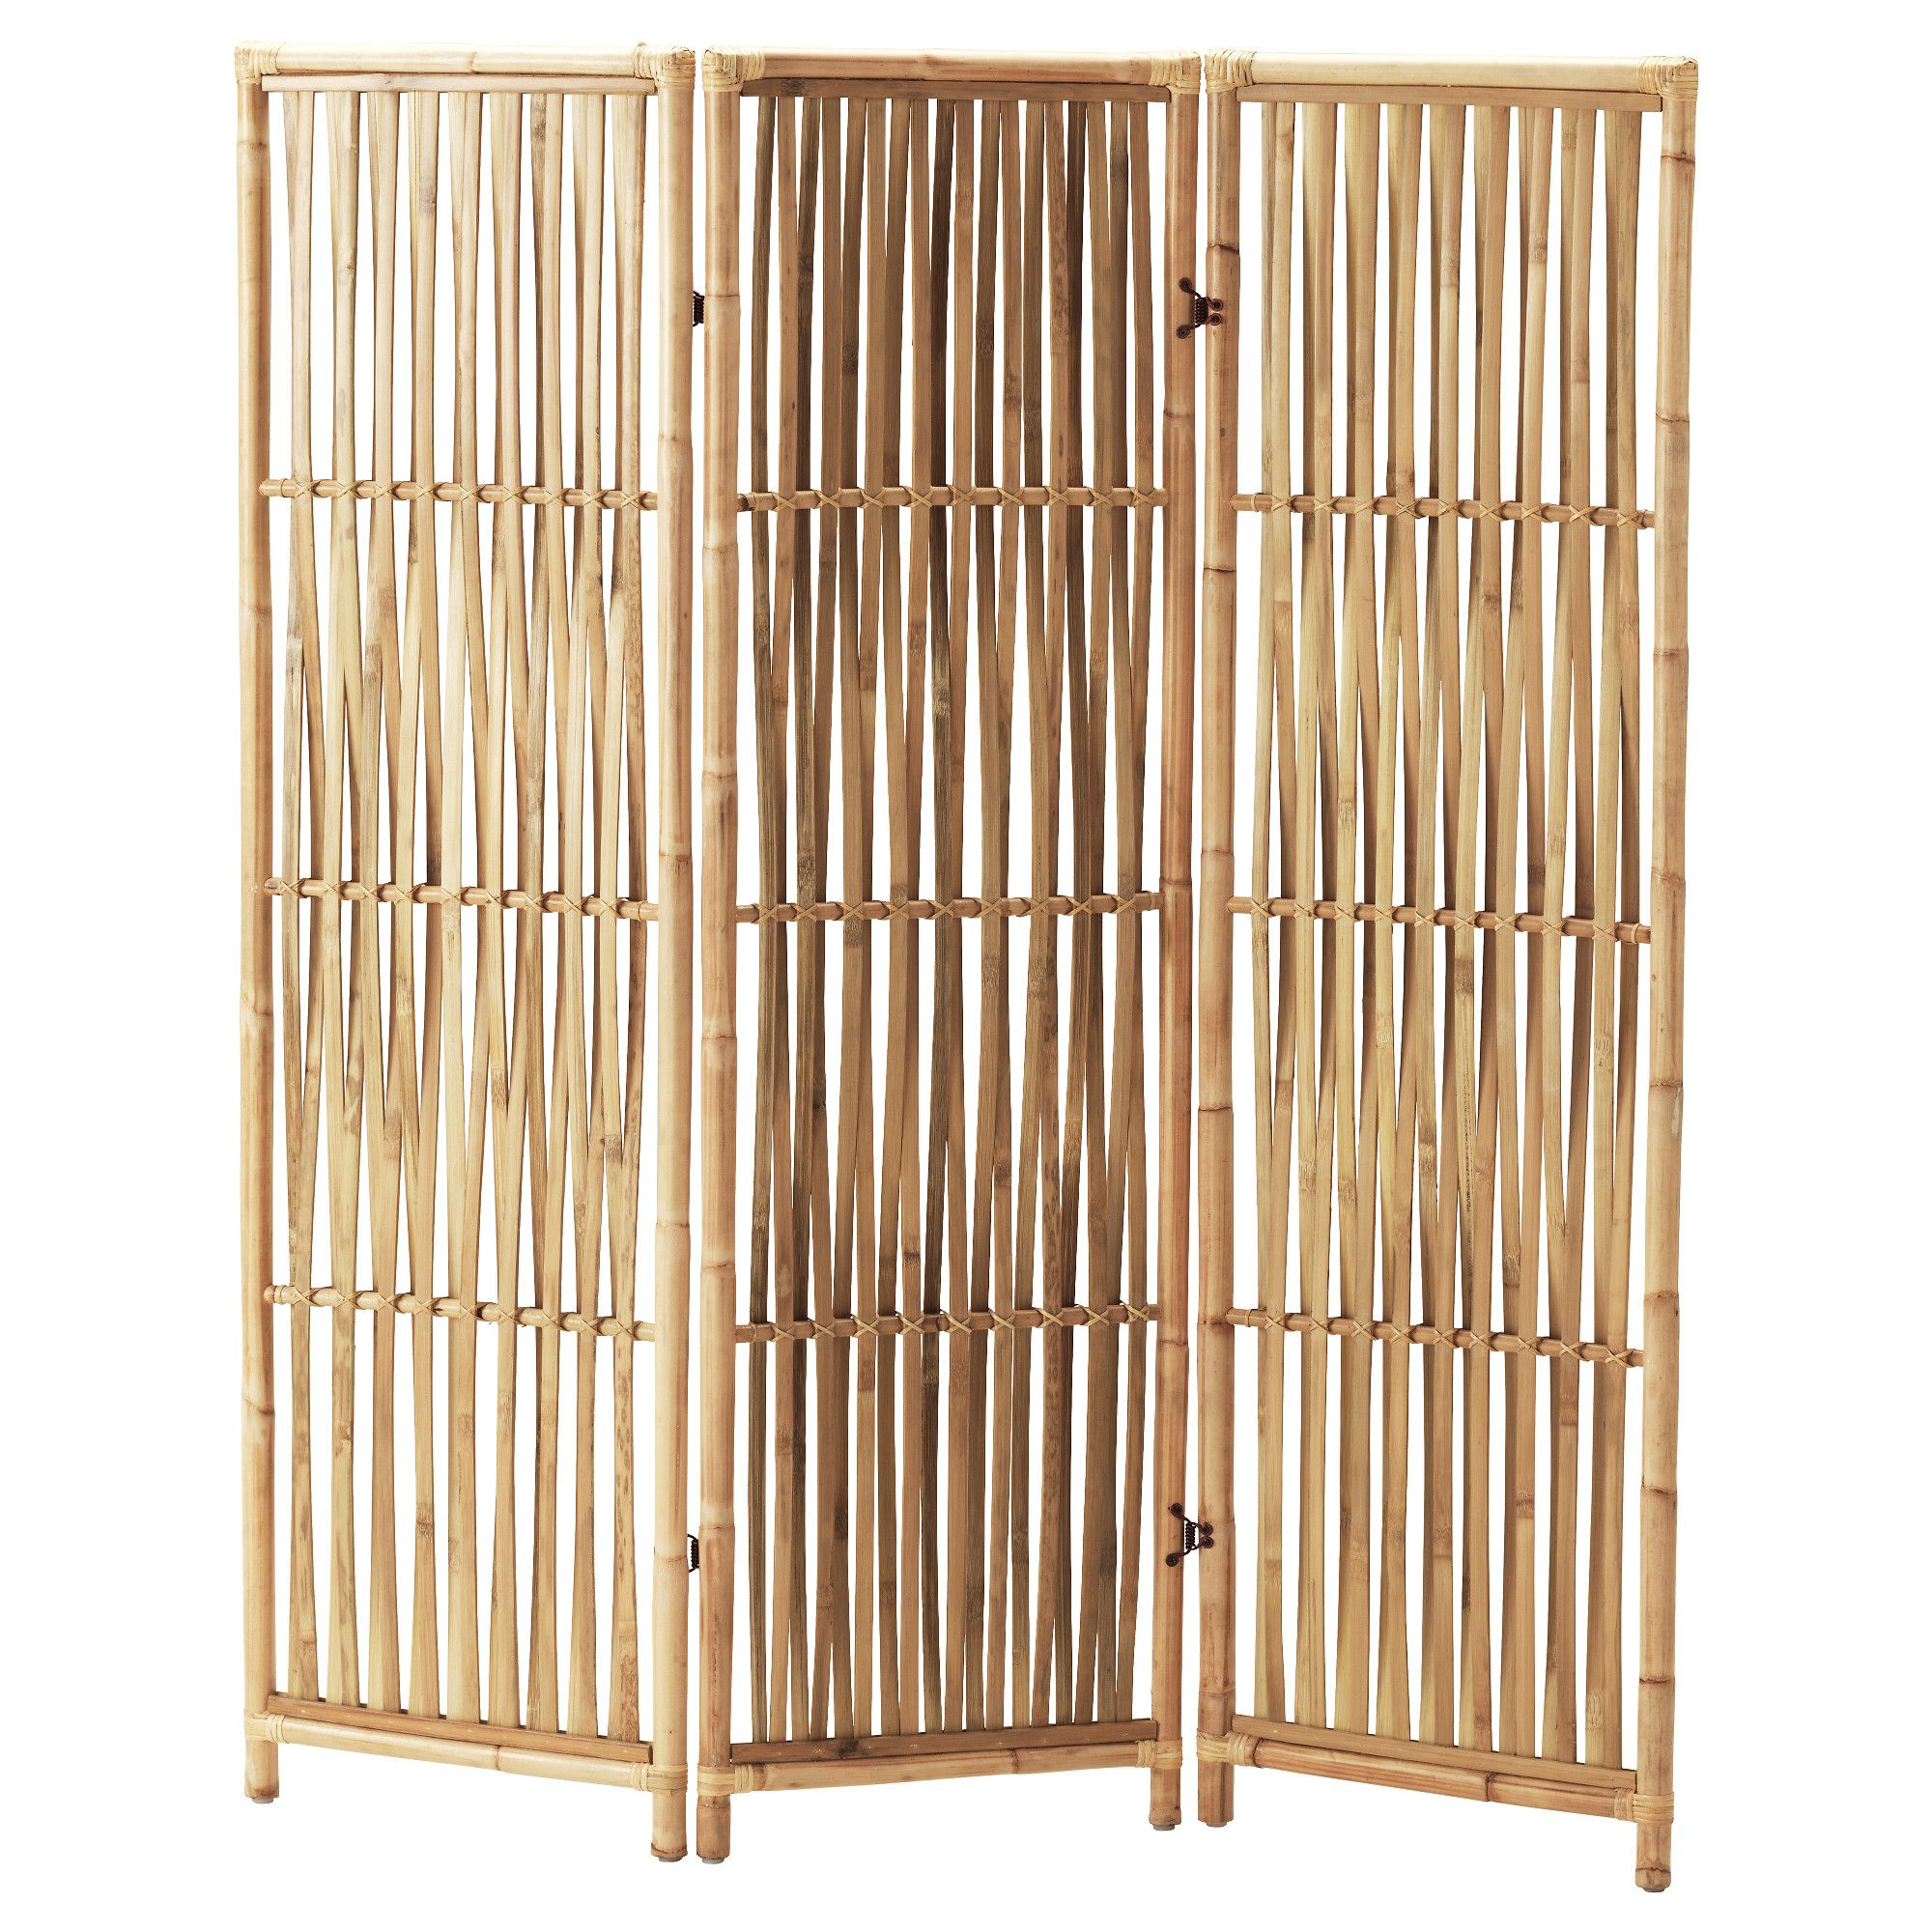 Ikea Raumteiler Rattan Ikea S Limited Edition Jassa Collection Is A Boho Lover S Dream In